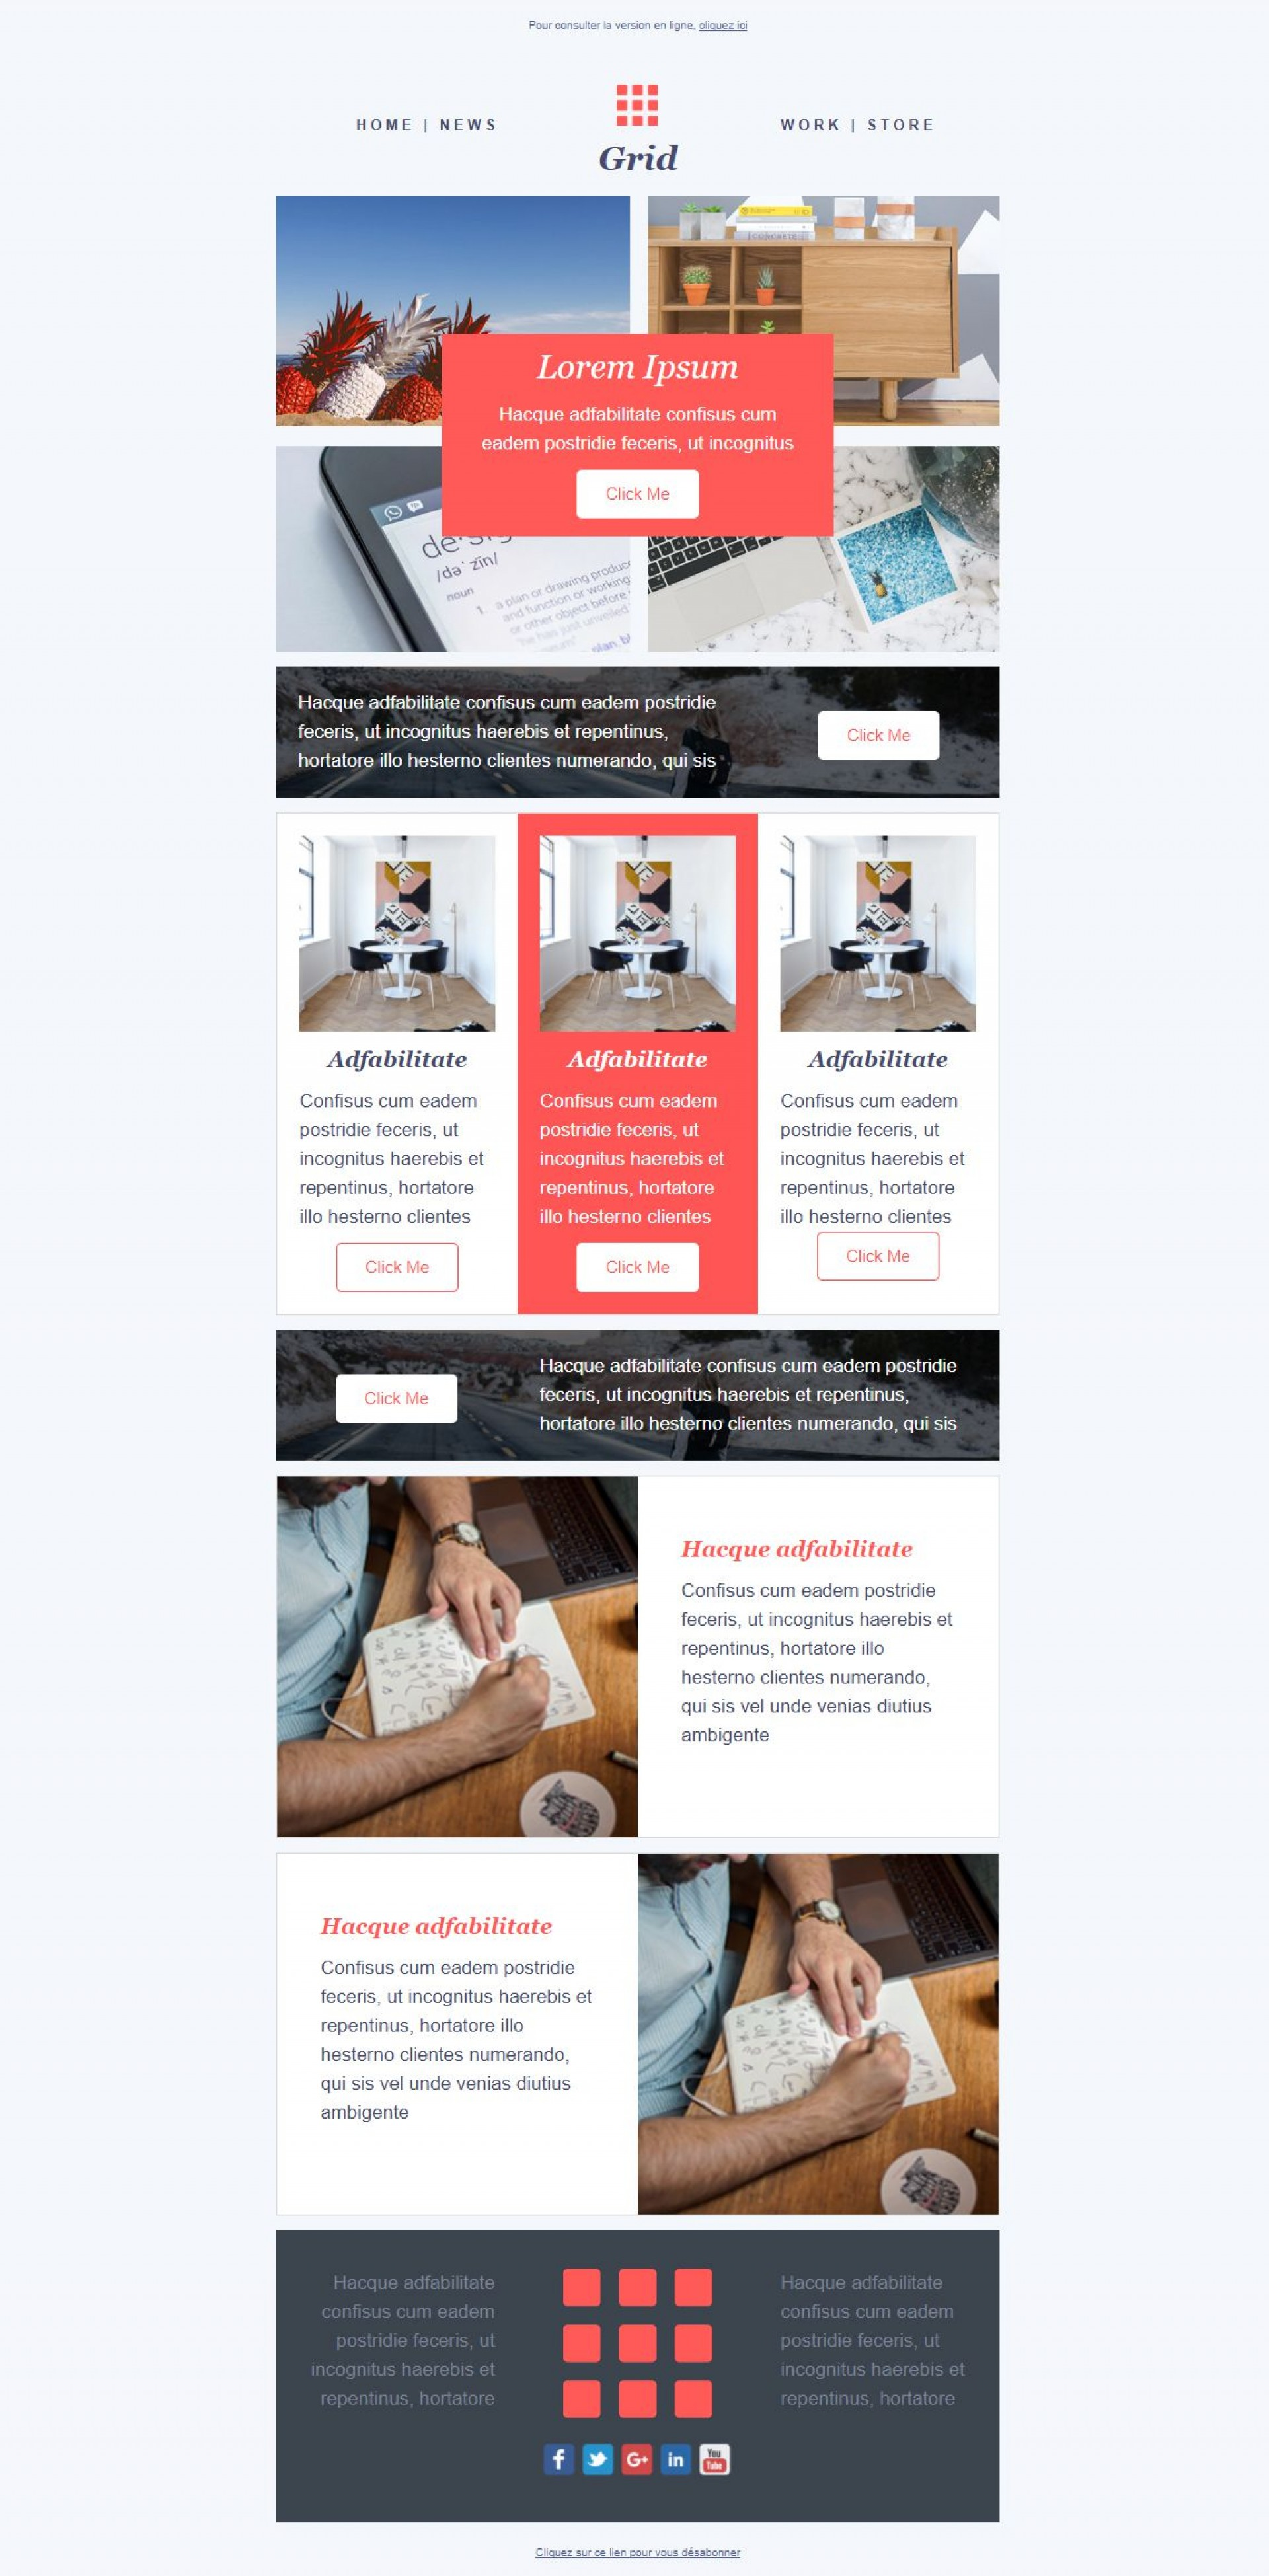 001 Top Email Newsletter Template Free Download Concept  Html Busines1920